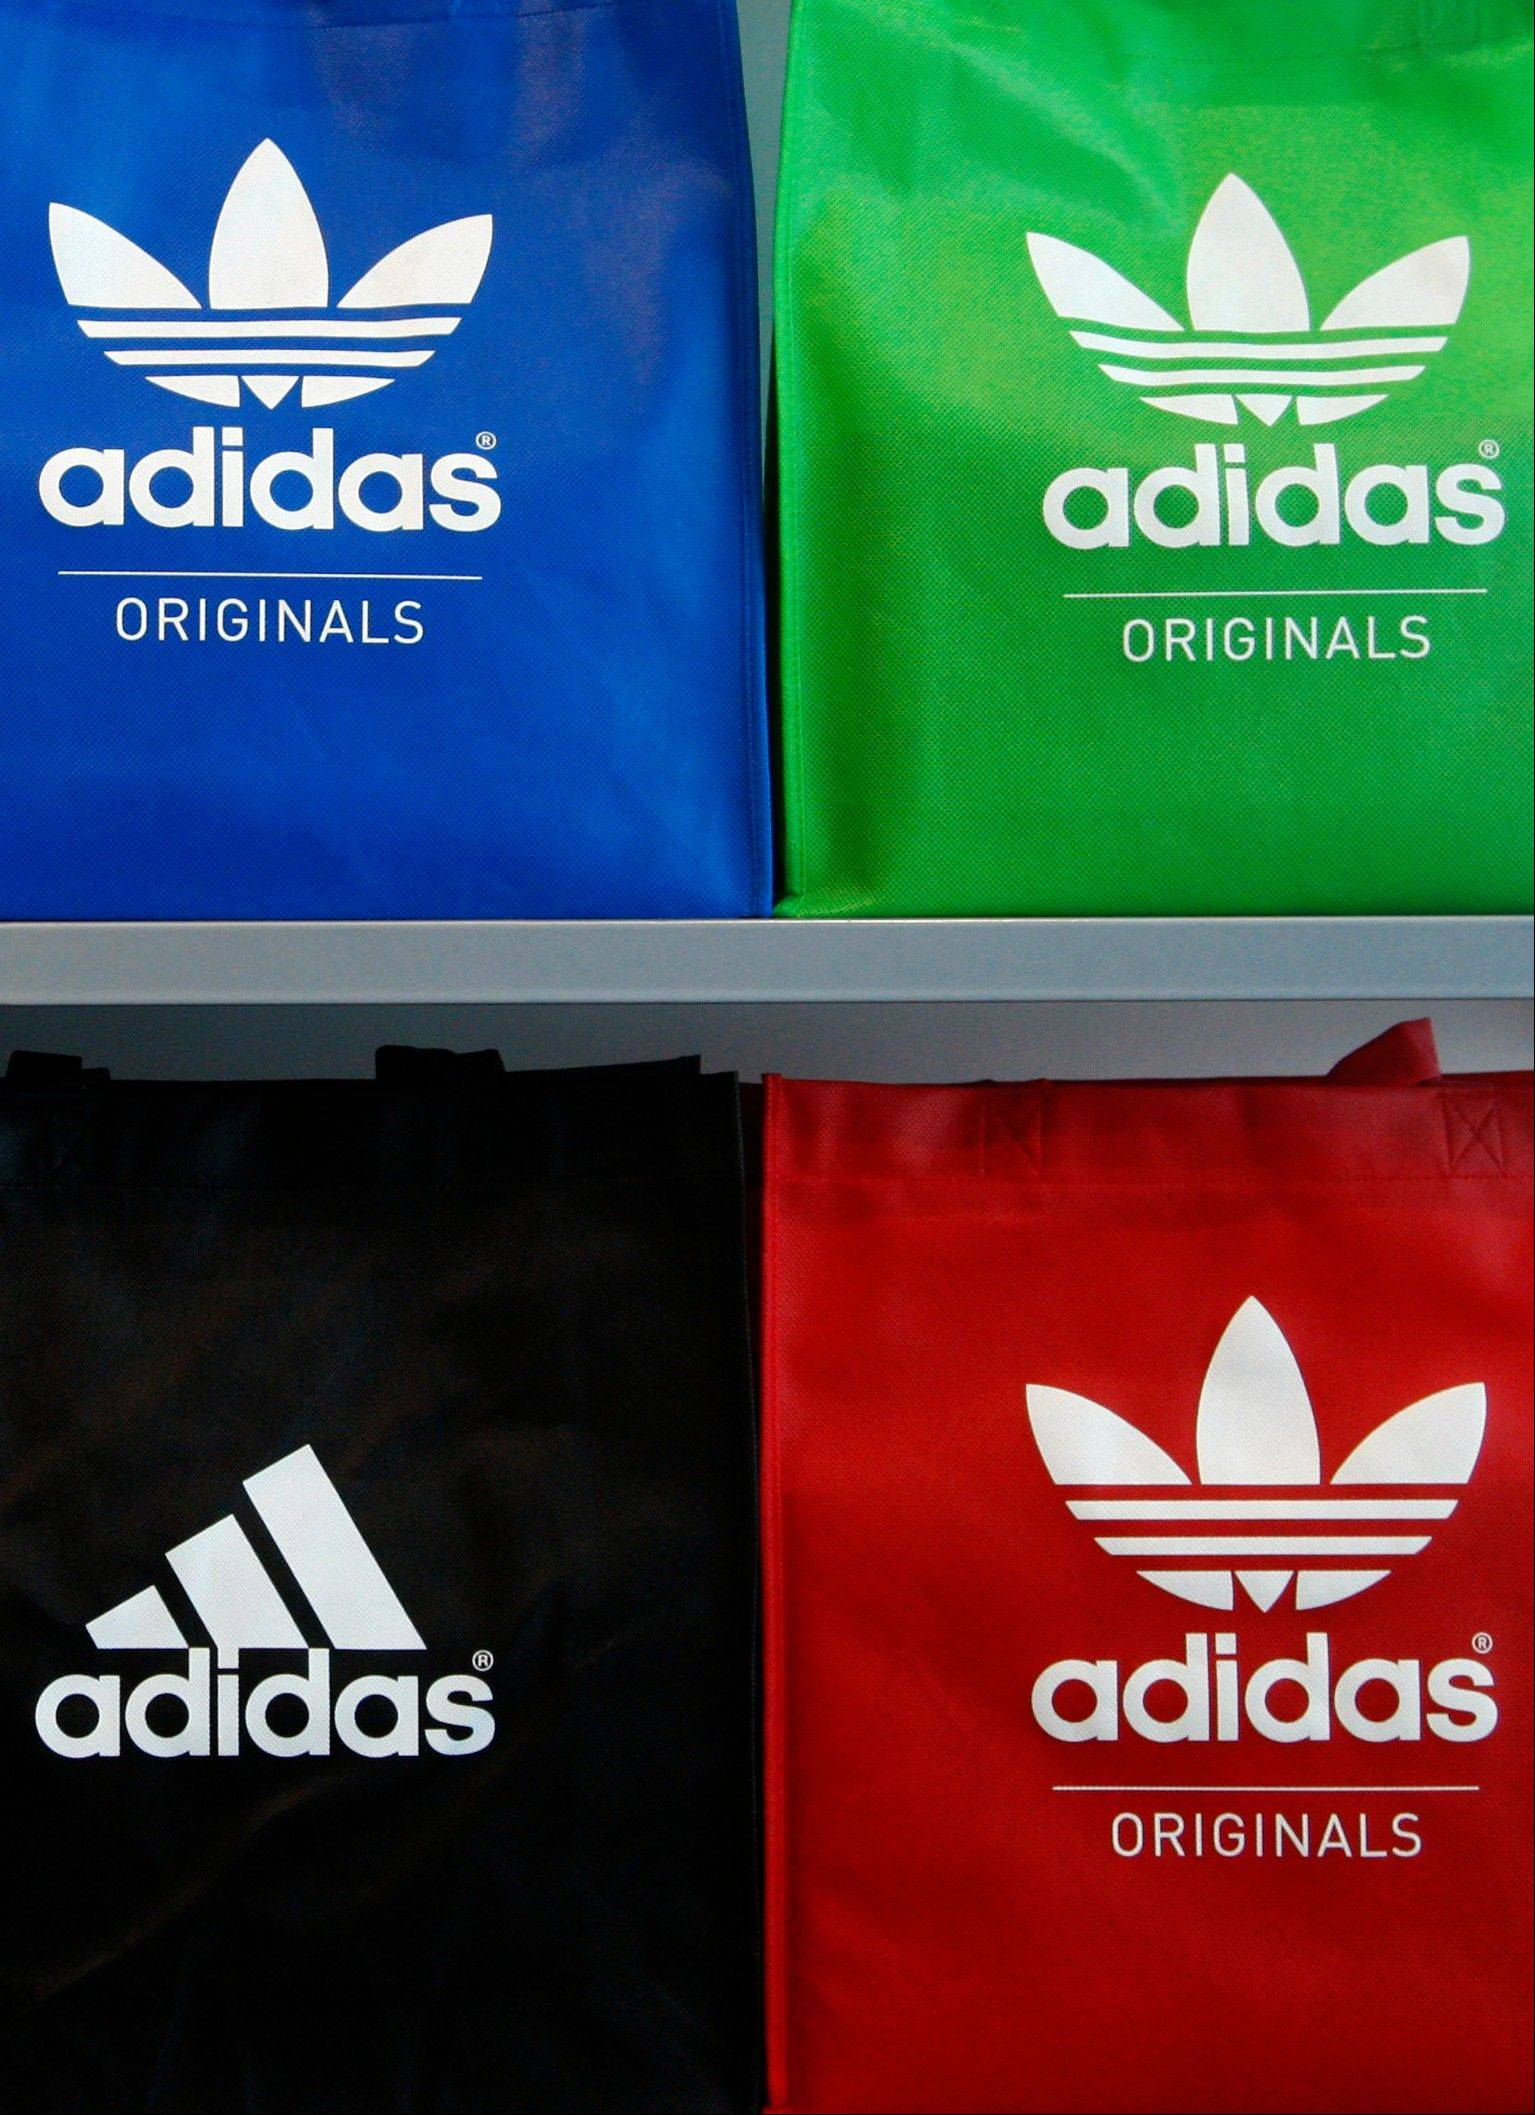 Adidas AG, the world�s second-biggest sporting-goods maker, cut its sales forecast for the year on lower sales expectations for its Reebok brand.